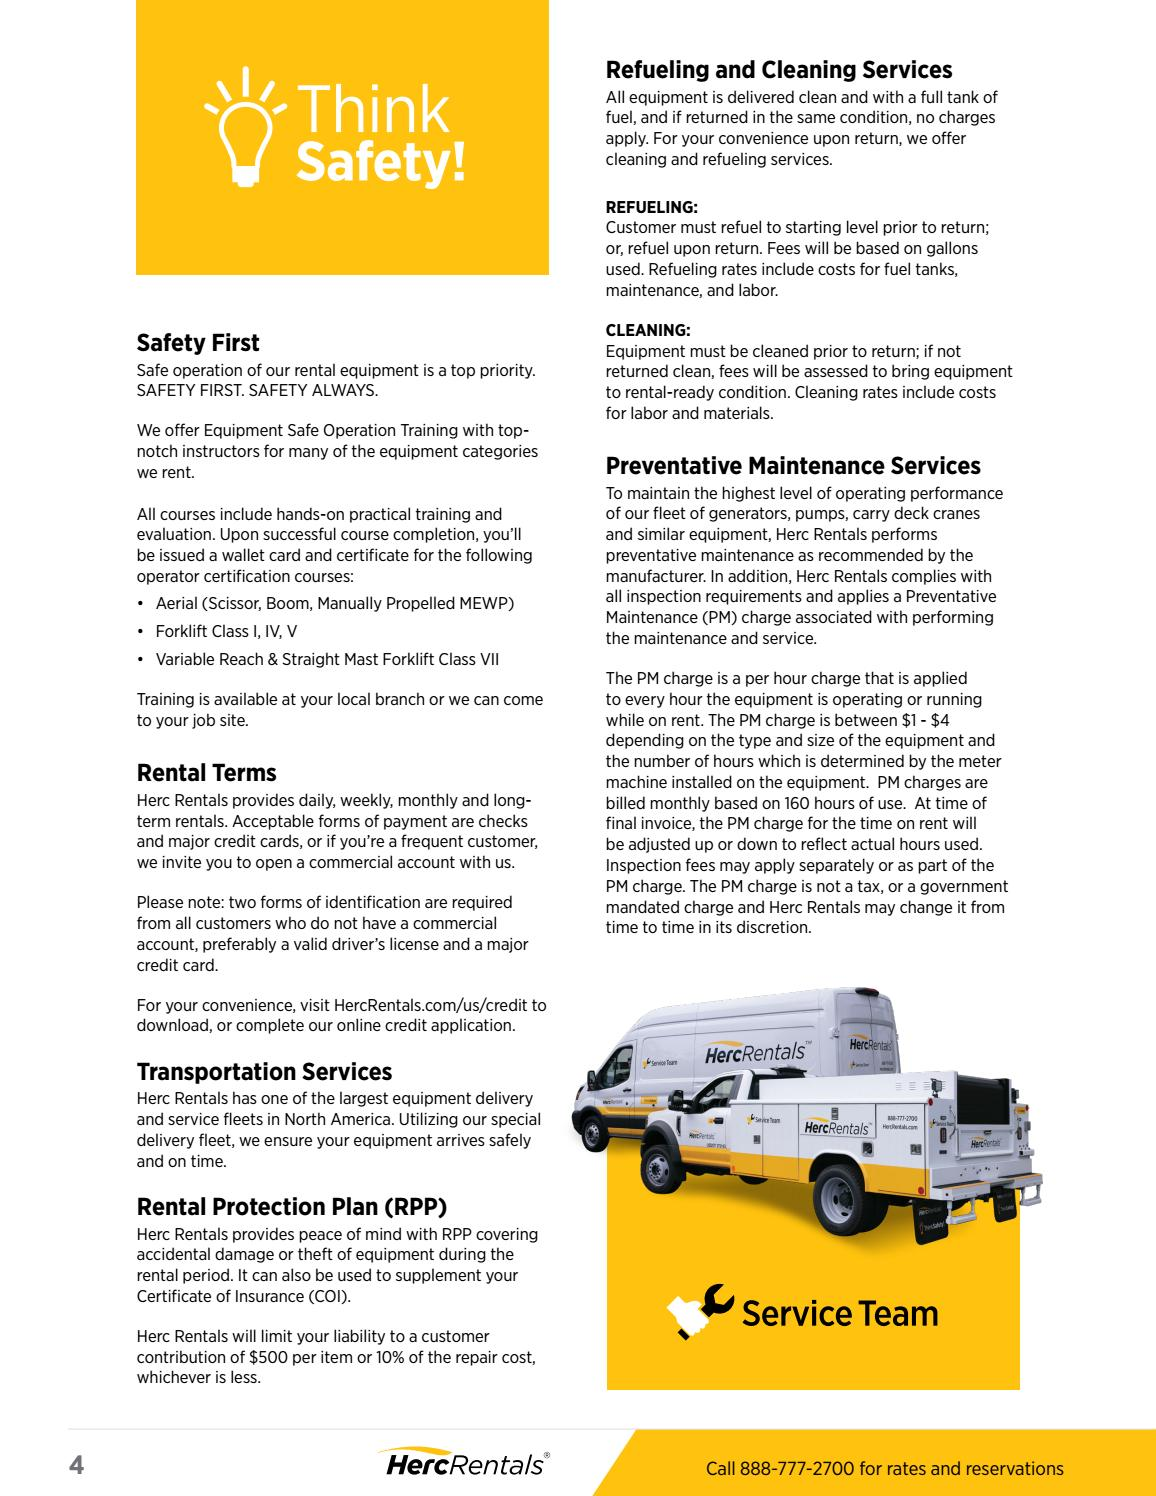 Herc Rentals Solutions Guide By Herc Rentals Issuu